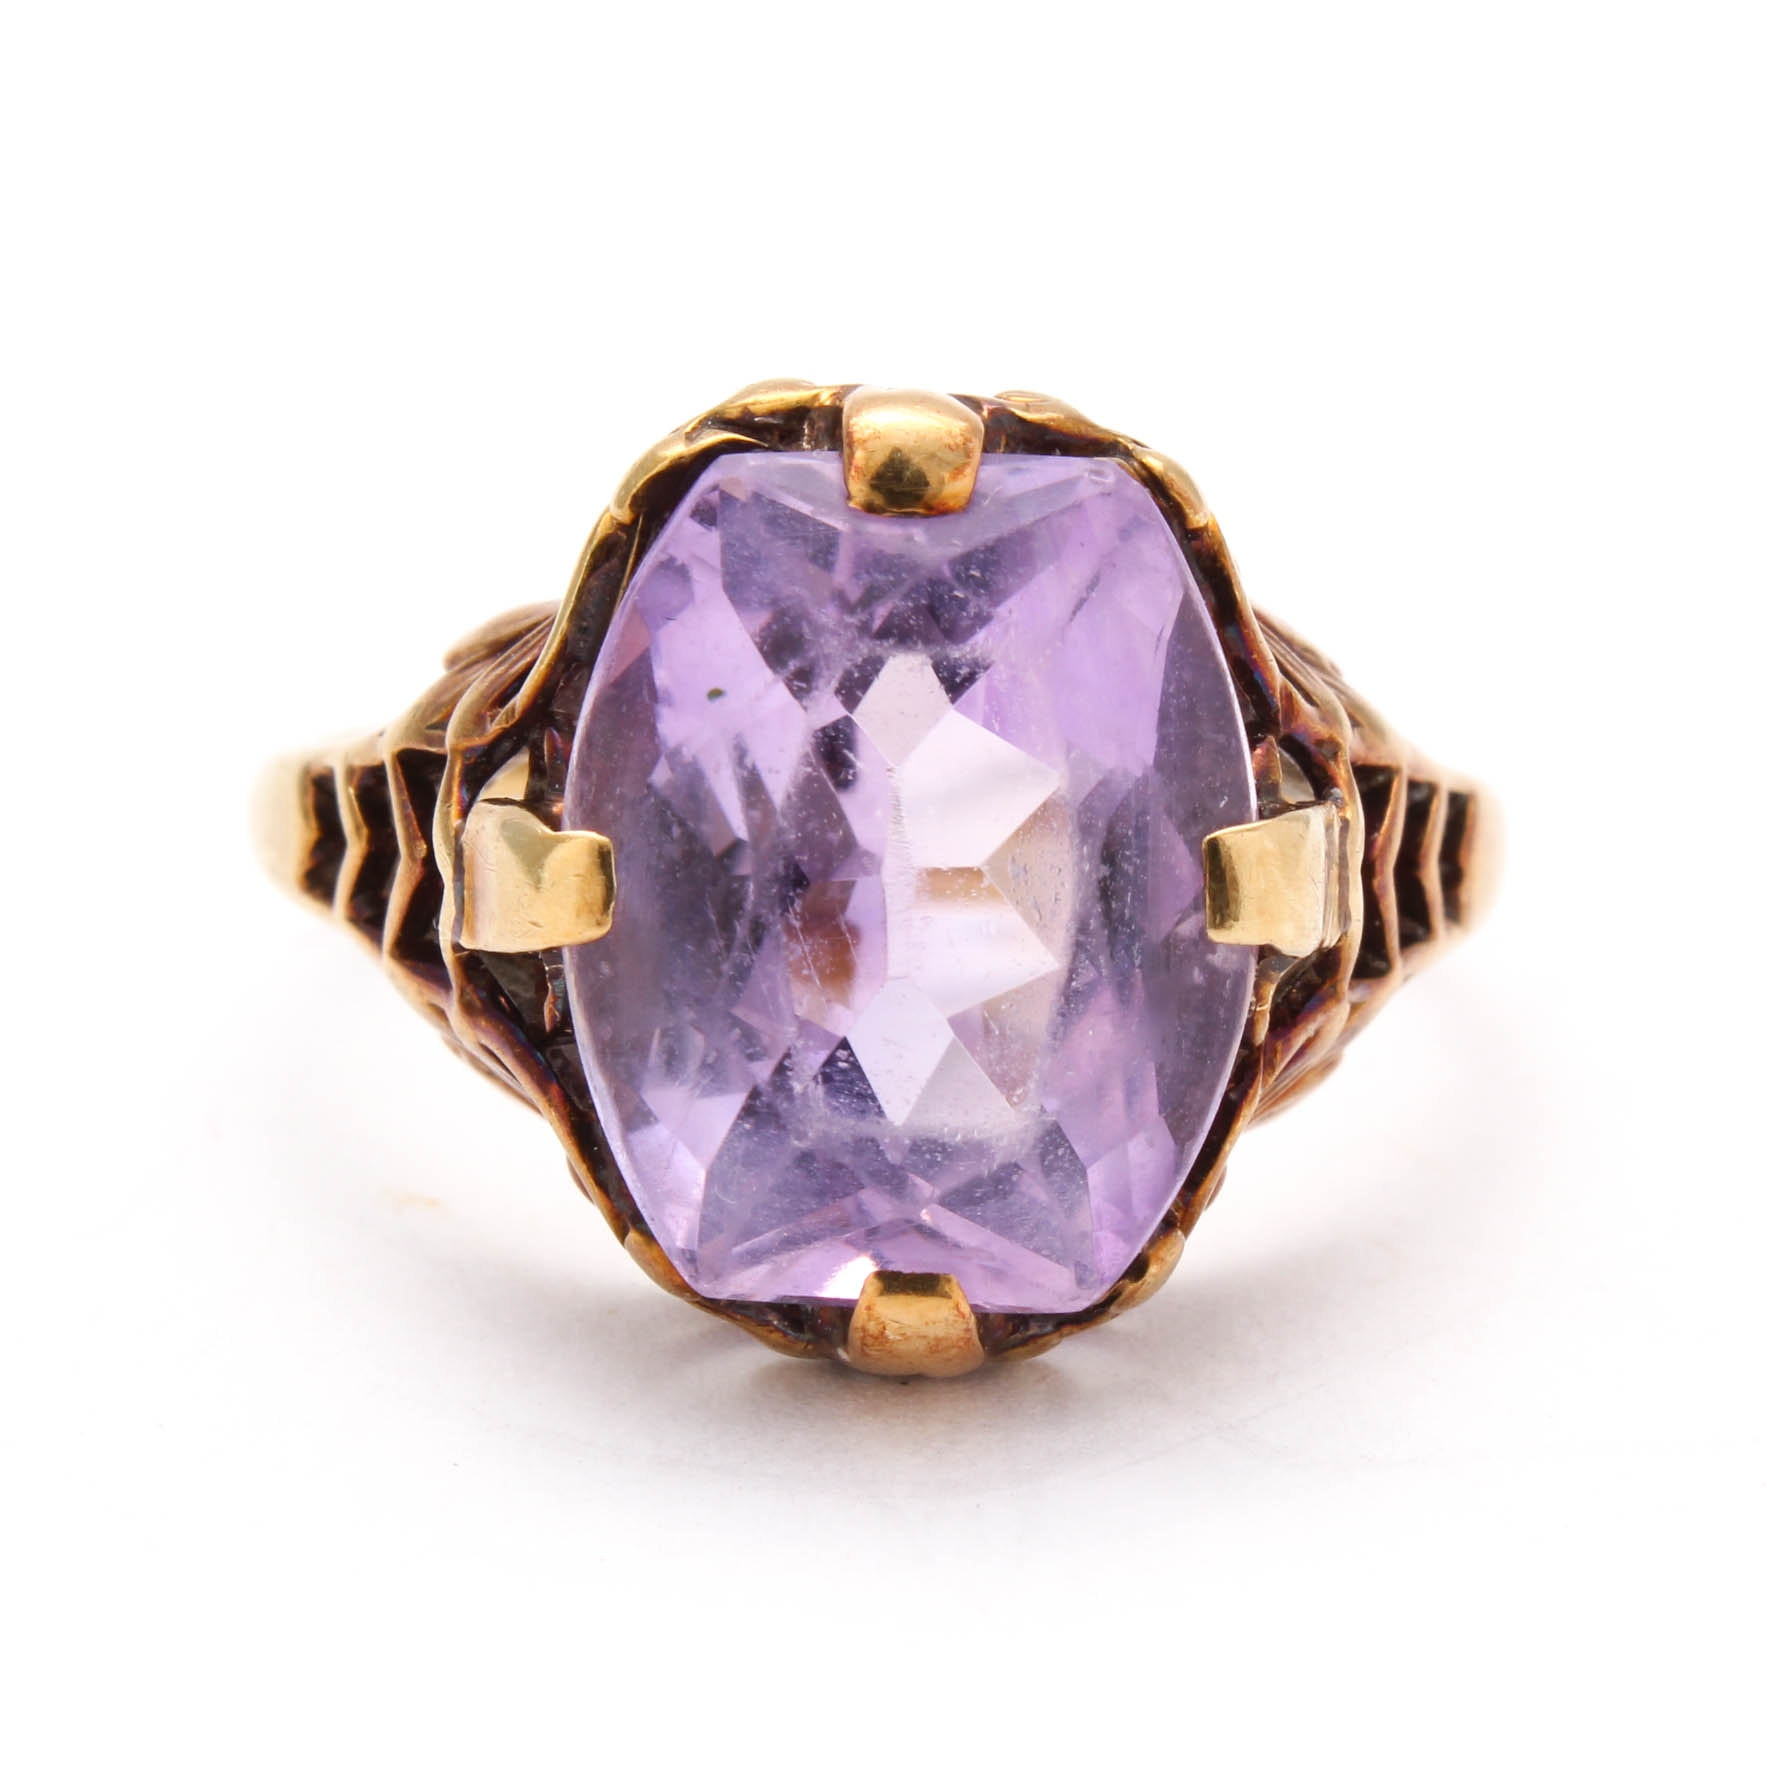 Vintage 14K Yellow Gold Amethyst Ring